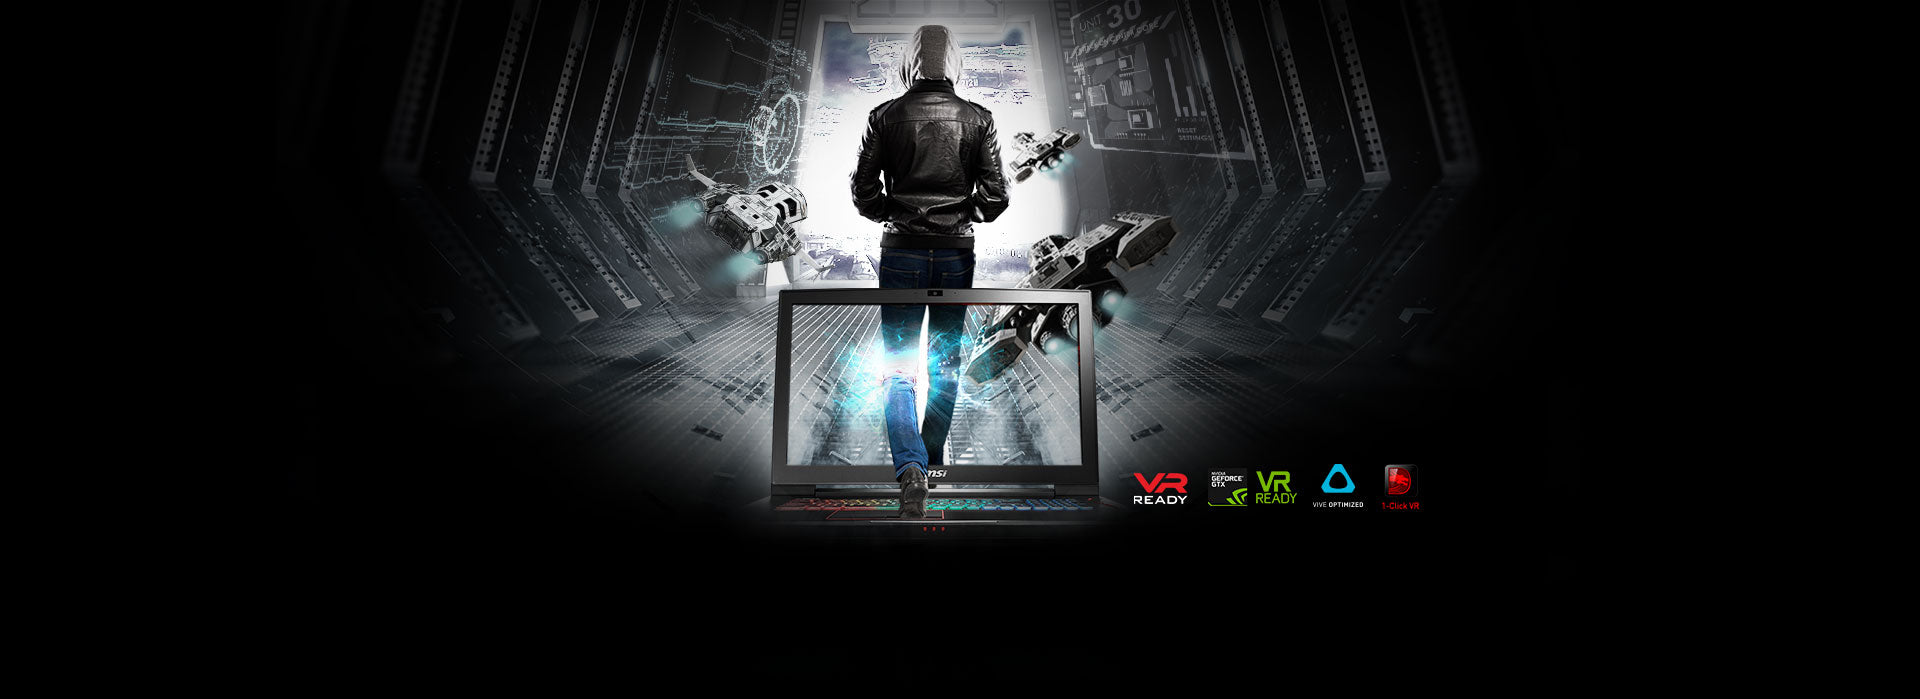 VR Ready. NVIDIA GeForce GTX VR Ready. VIVE Optimized. 1-Click VR.